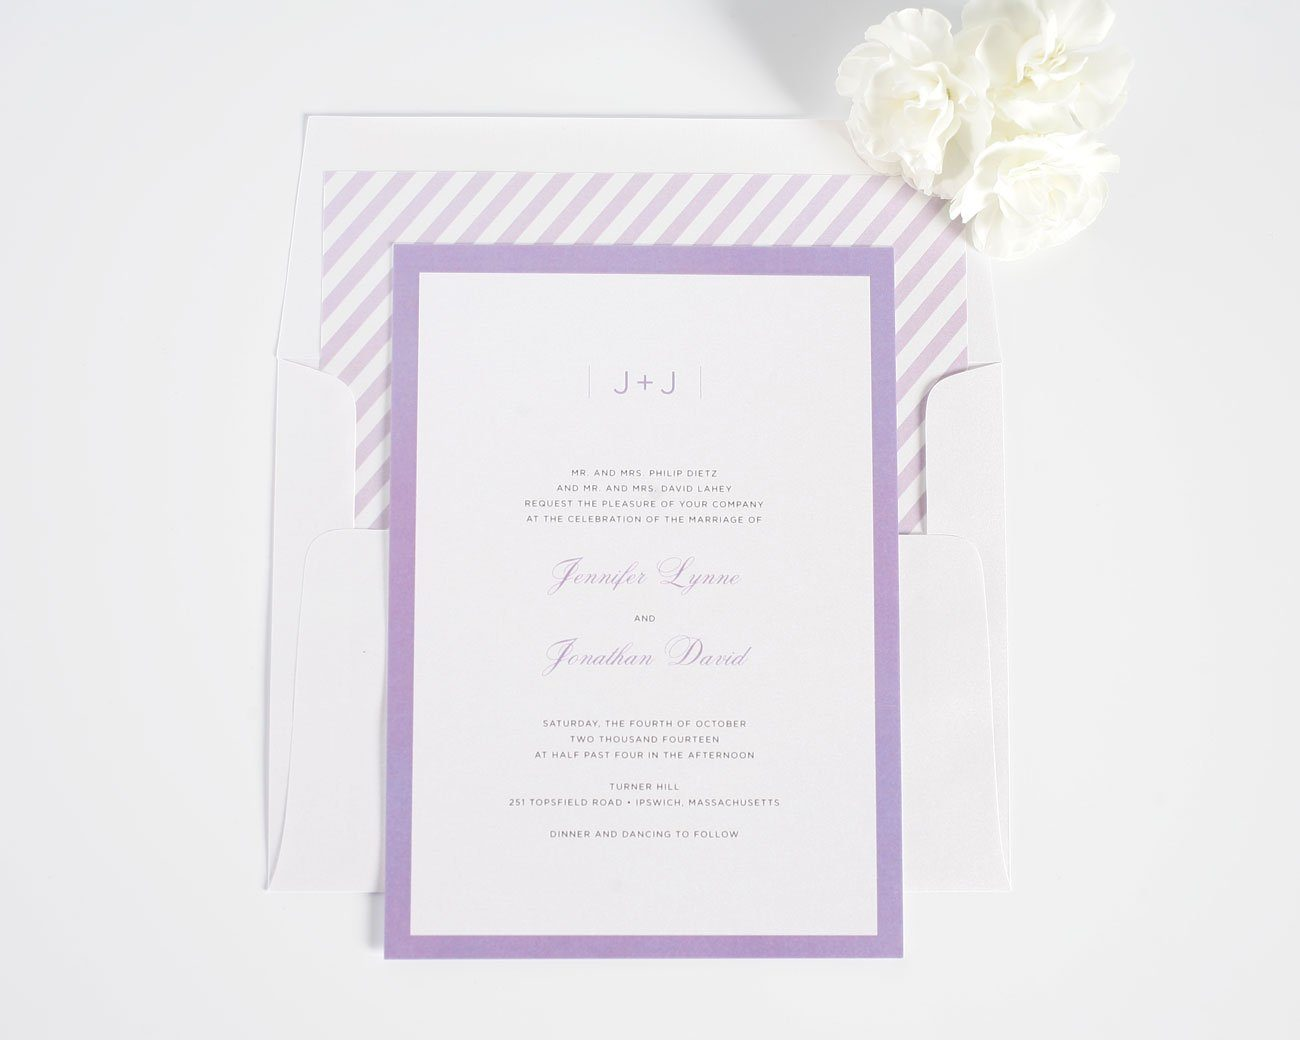 sophisticated wedding invitations in purple  u2013 wedding invitations